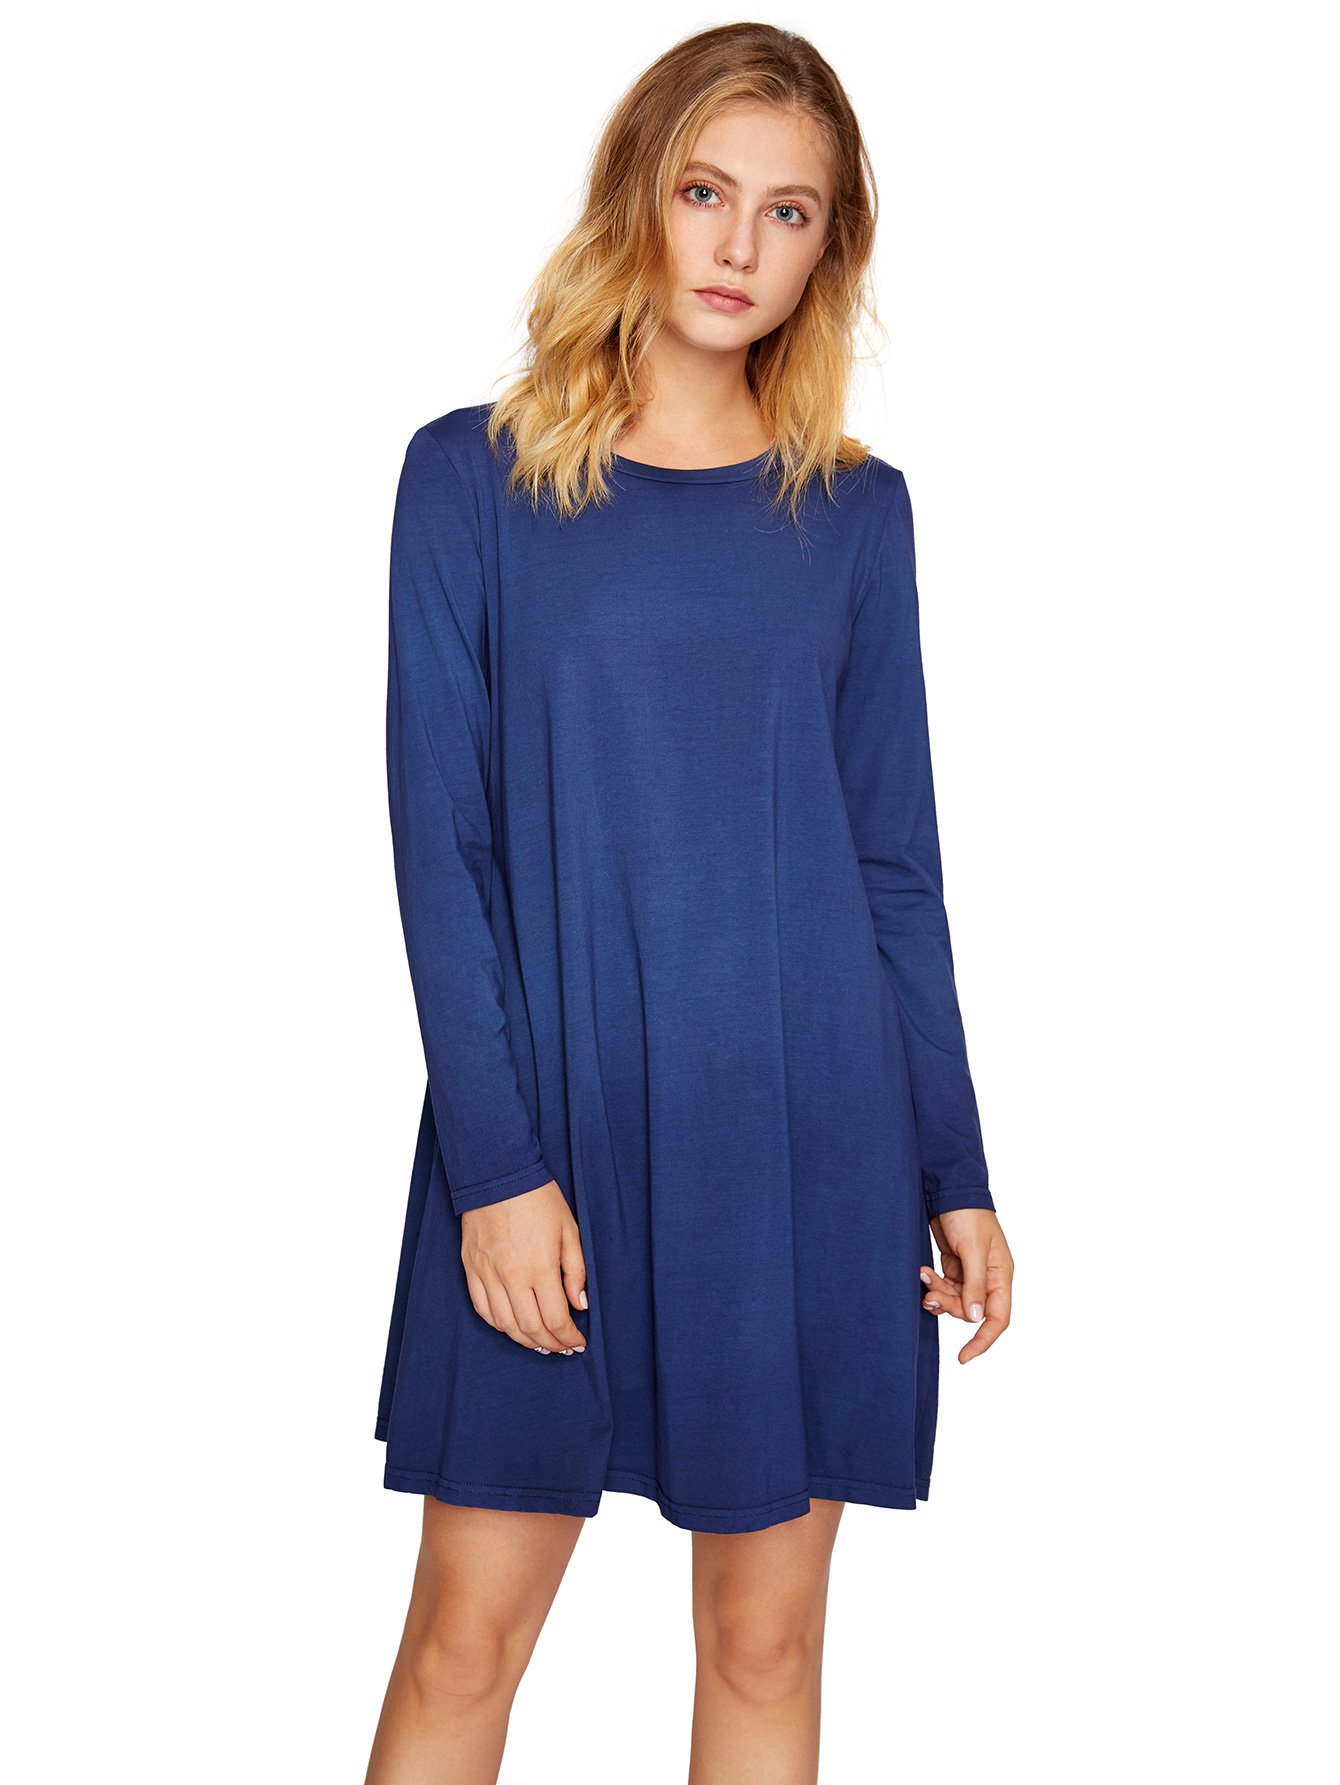 f03a508bb Galleon - Romwe Women's Tunic Swing T-Shirt Dress Short Sleeve Tie Dye  Ombre Dress (Small, 0-Dark Blue)